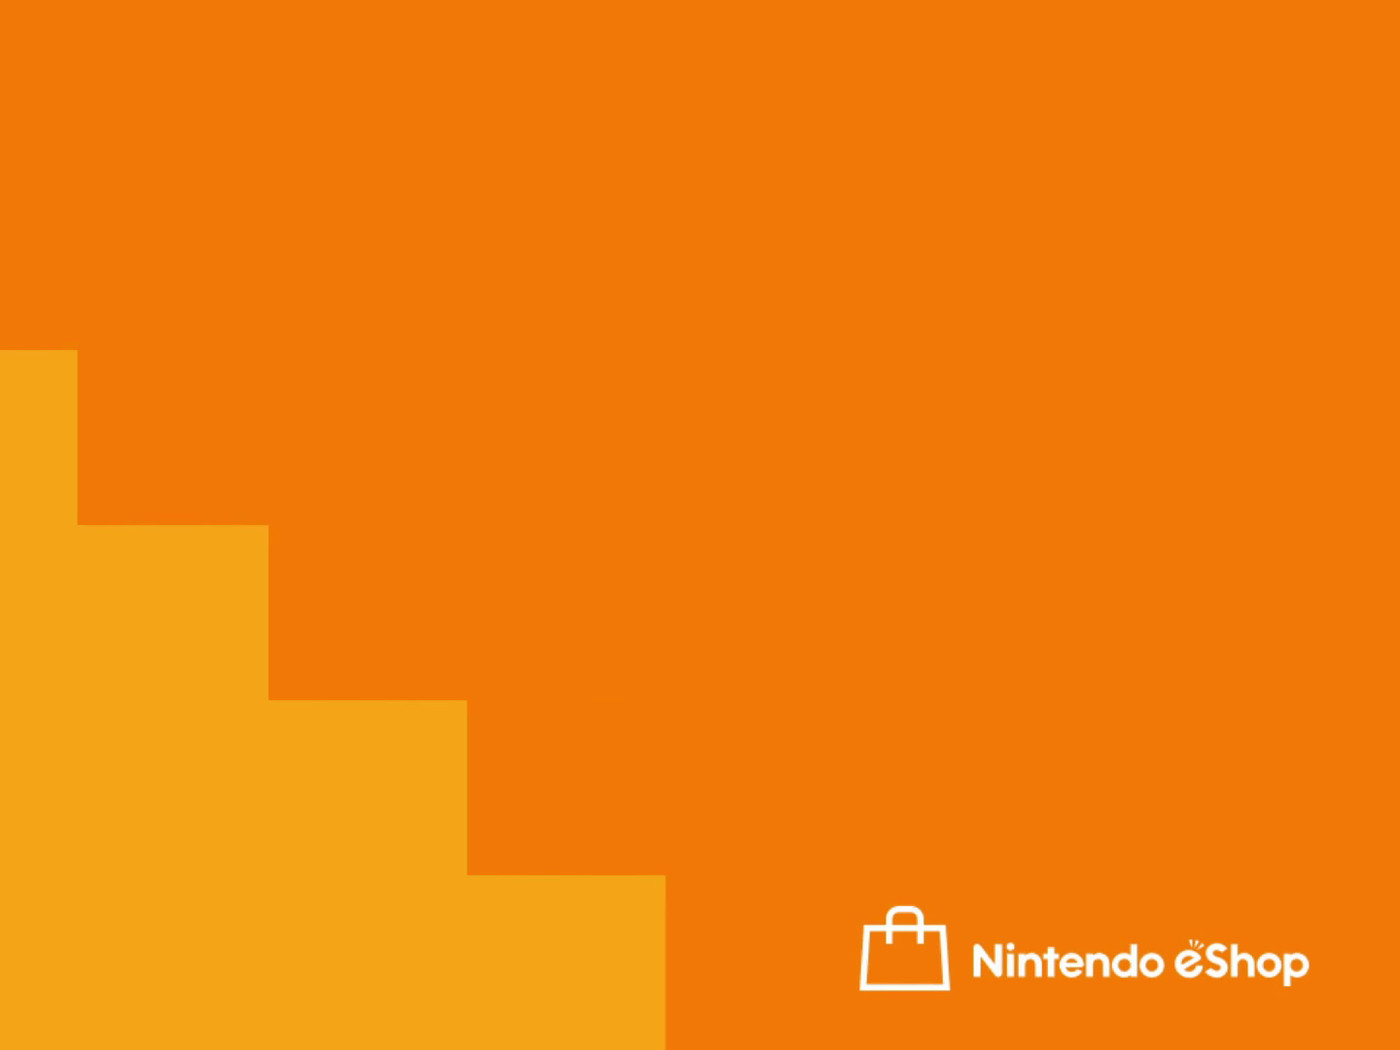 South American eShop codes can be redeemed on the North American eShop for My Nintendo Gold Points